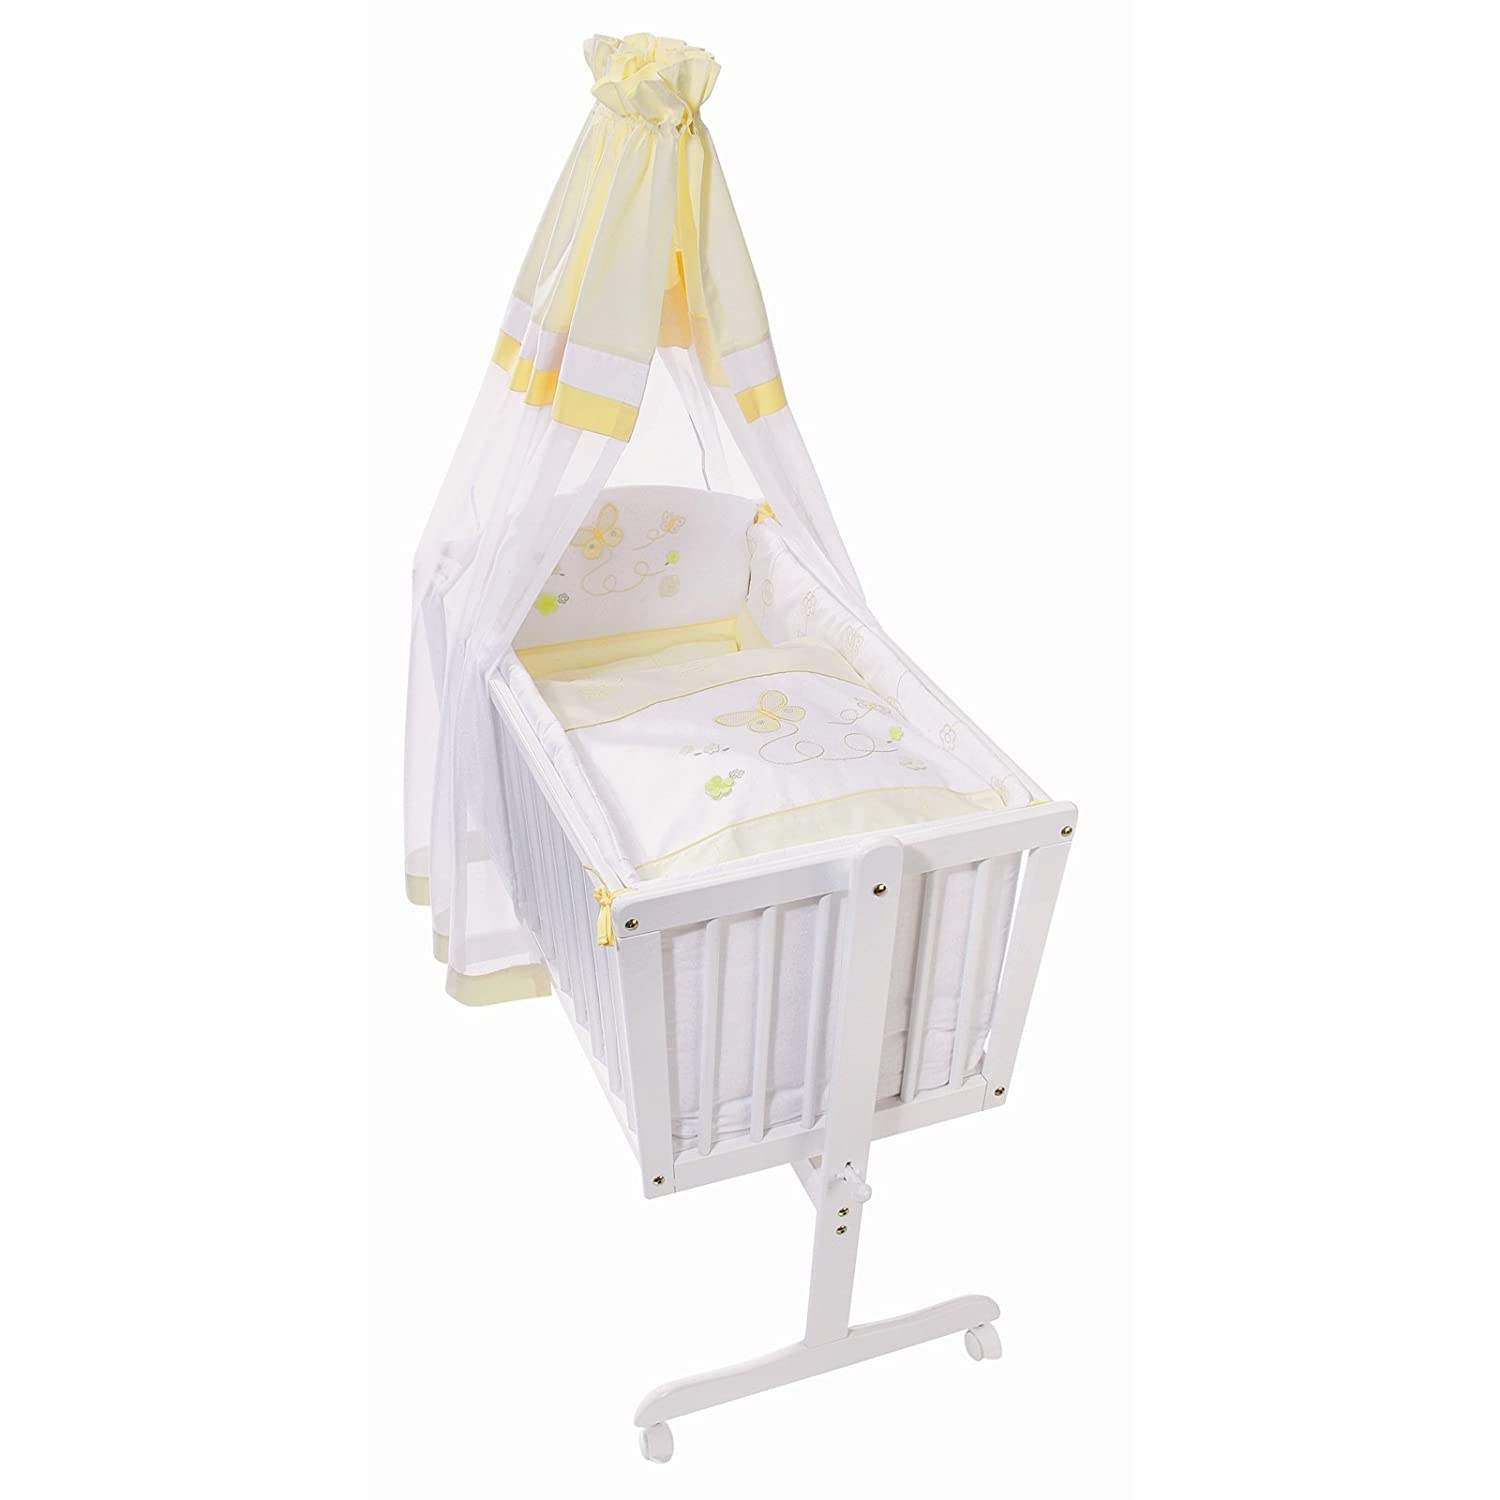 Easy Baby Wiege Komplettset natur, Butterfly yellow 181-86